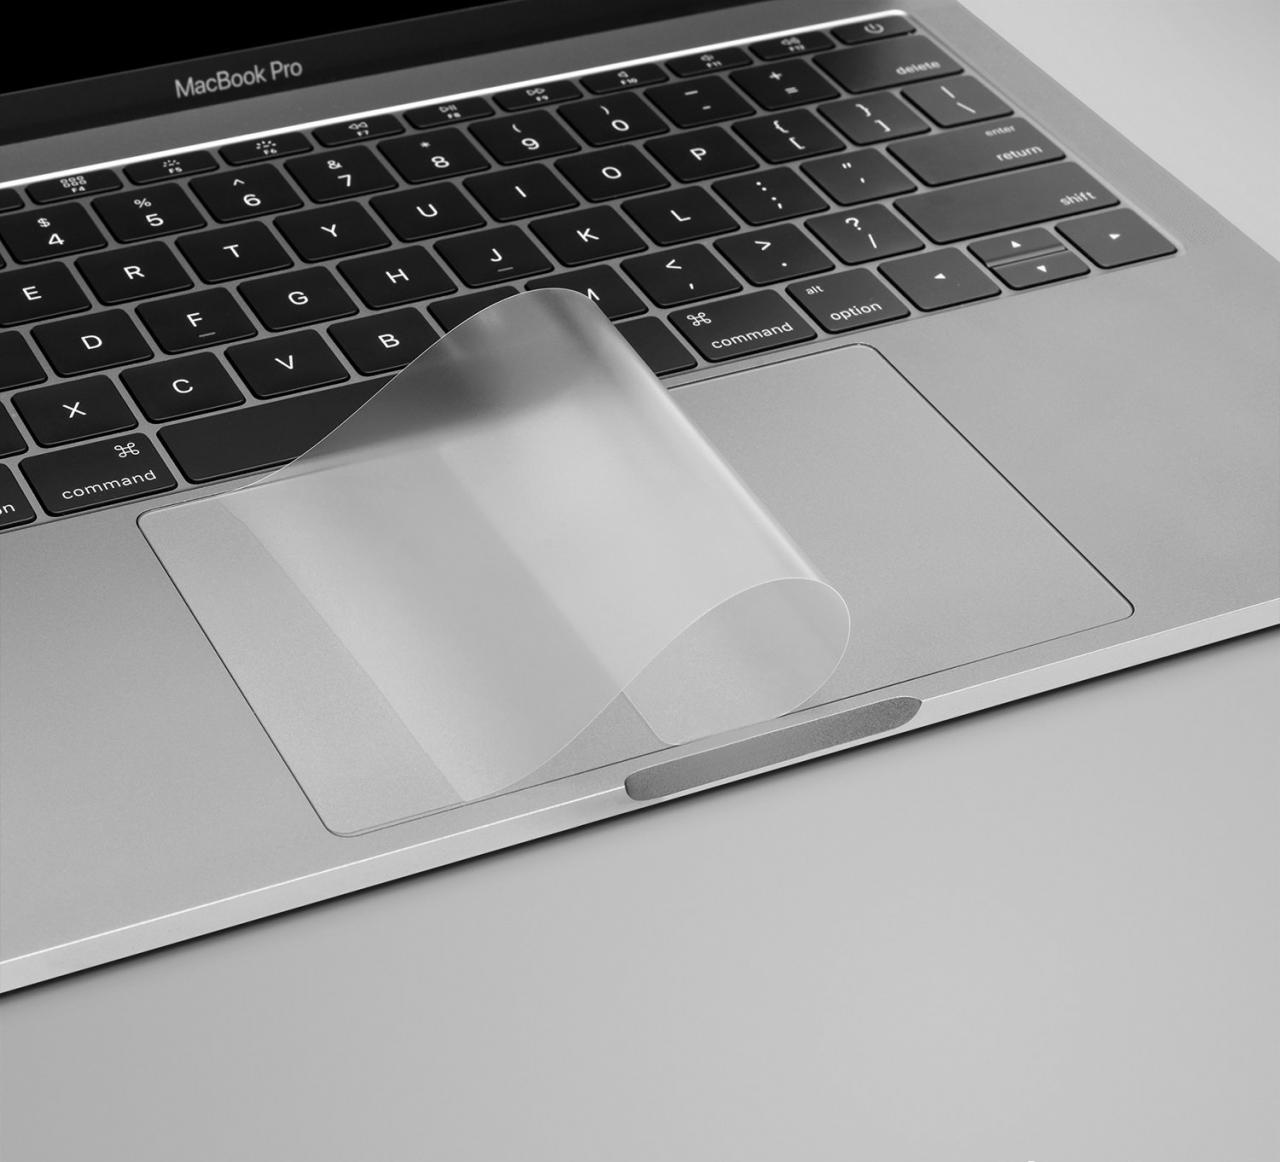 Touchpad Macbook Pro 15 inch